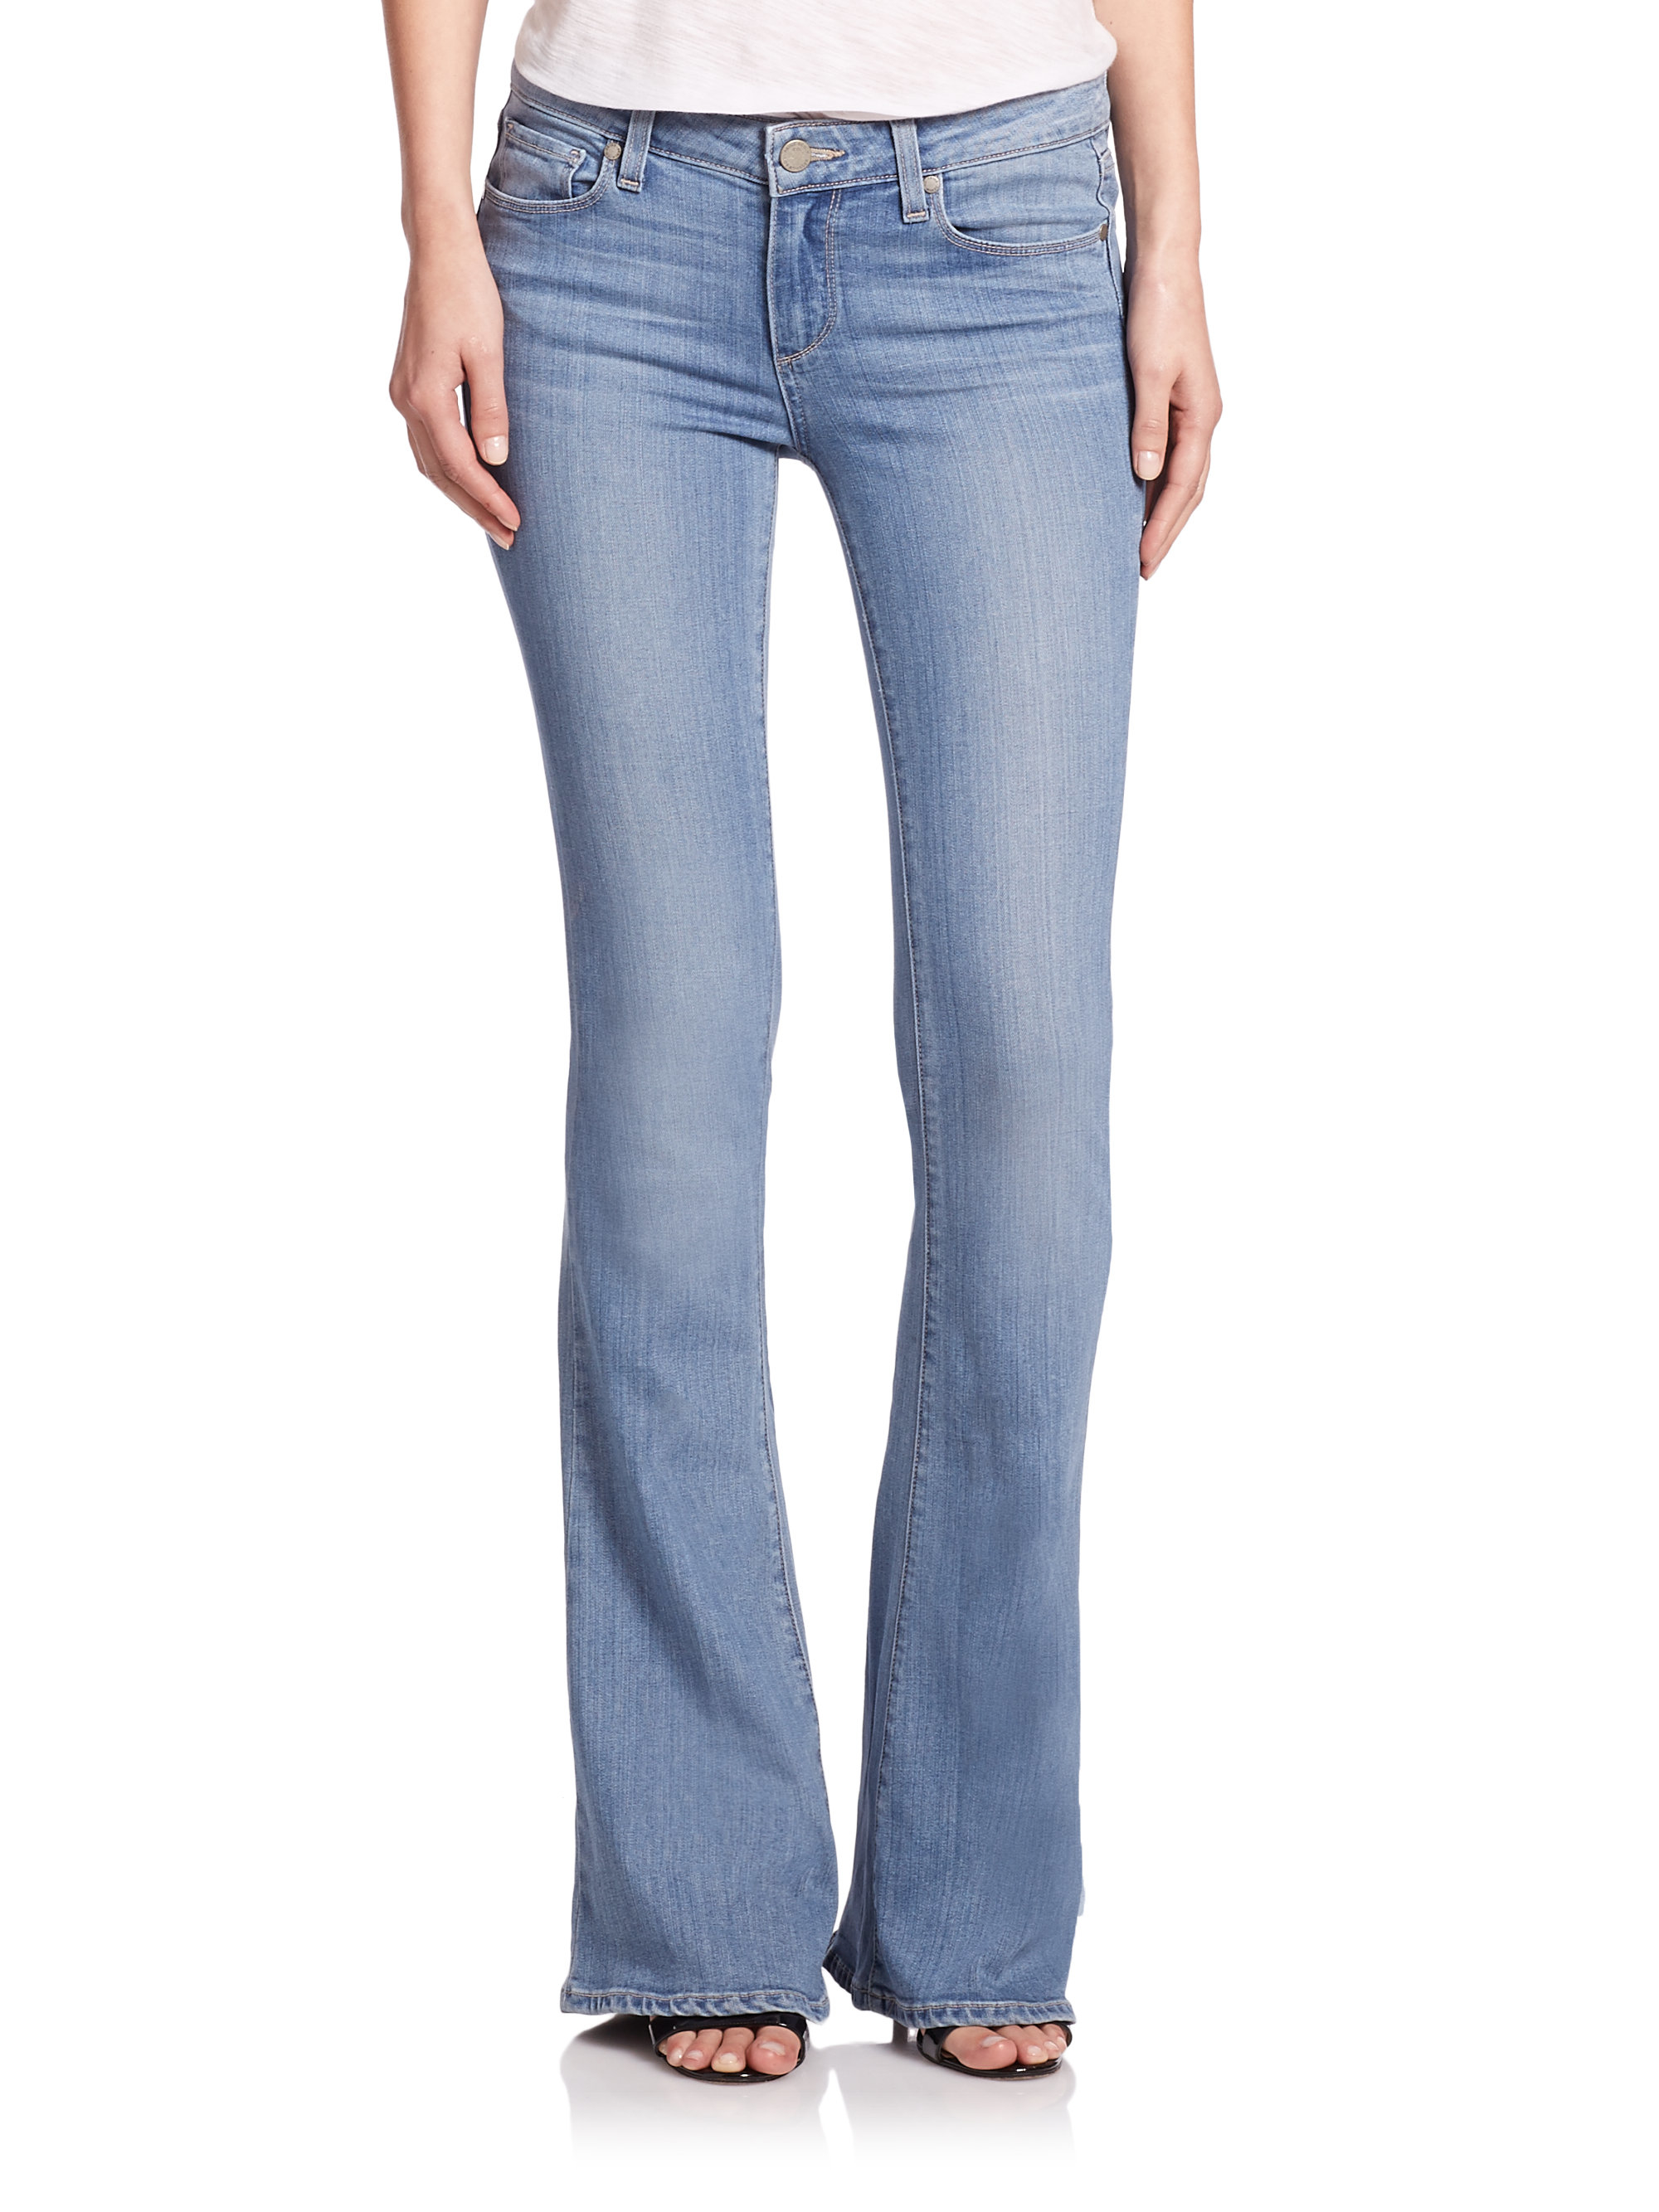 Paige Lou Lou Mid-rise Flared Jeans in Blue | Lyst